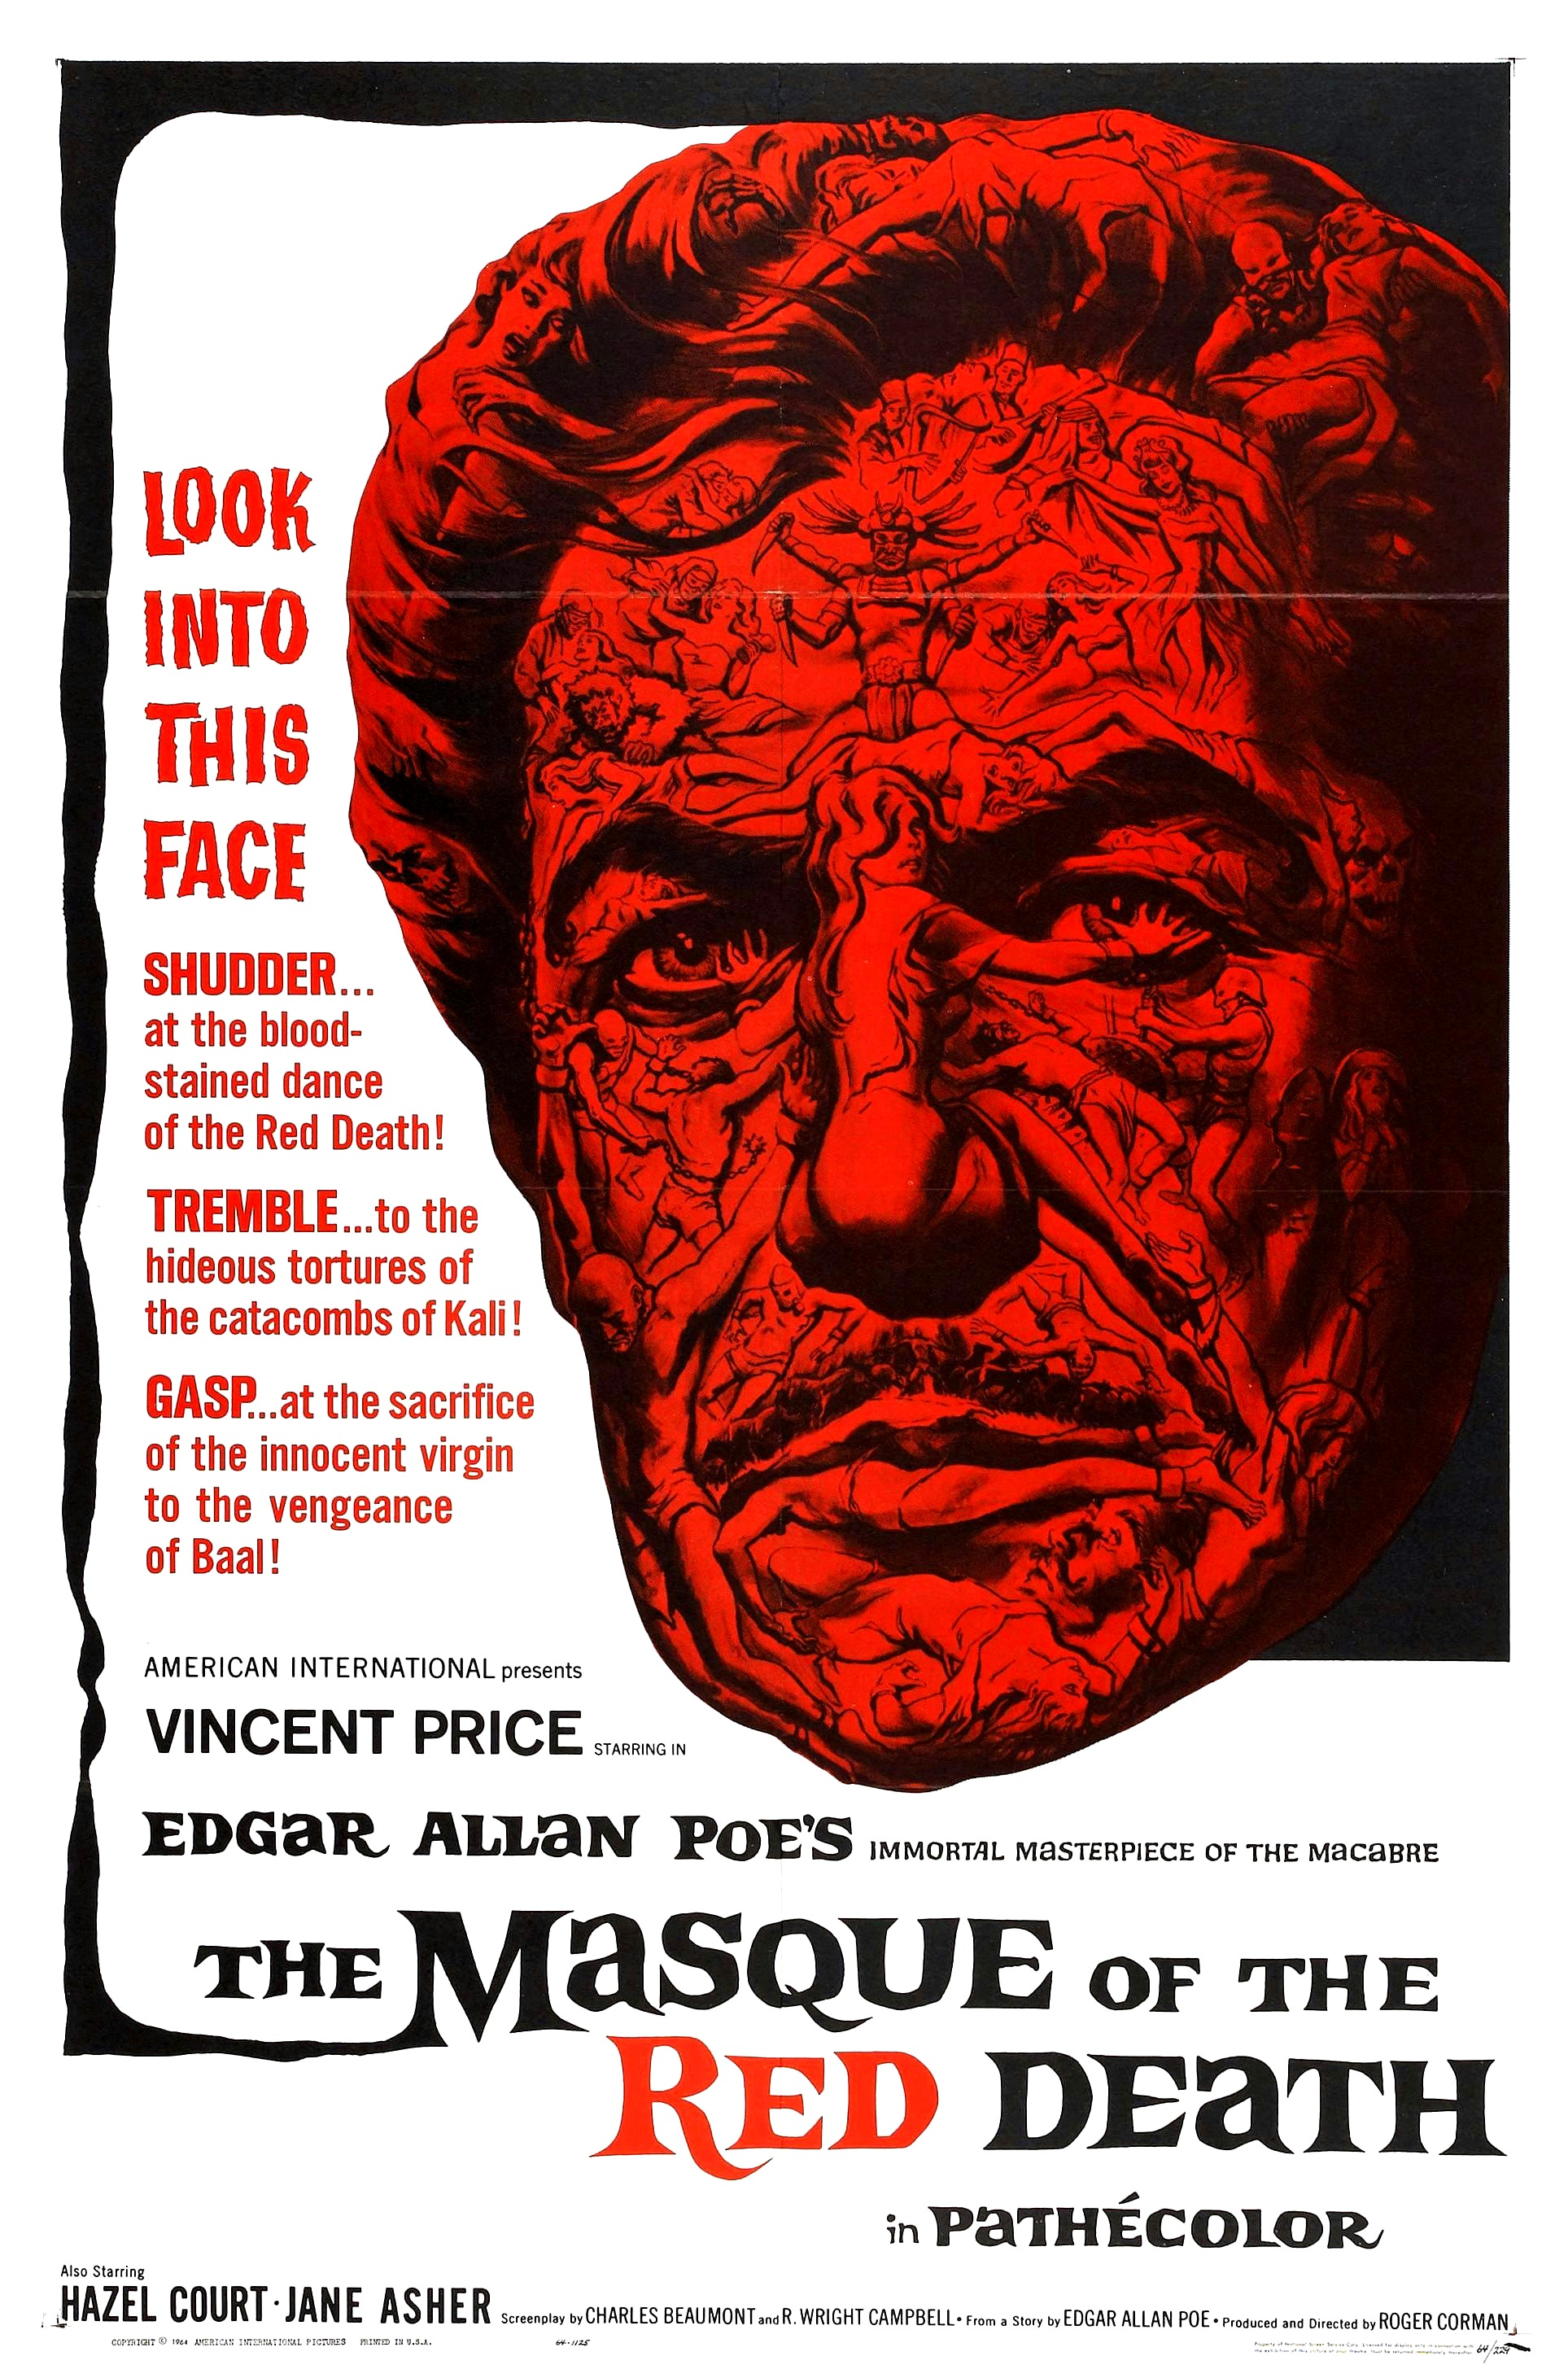 Masque-of-the-Red-Death-1964-poster.jpg